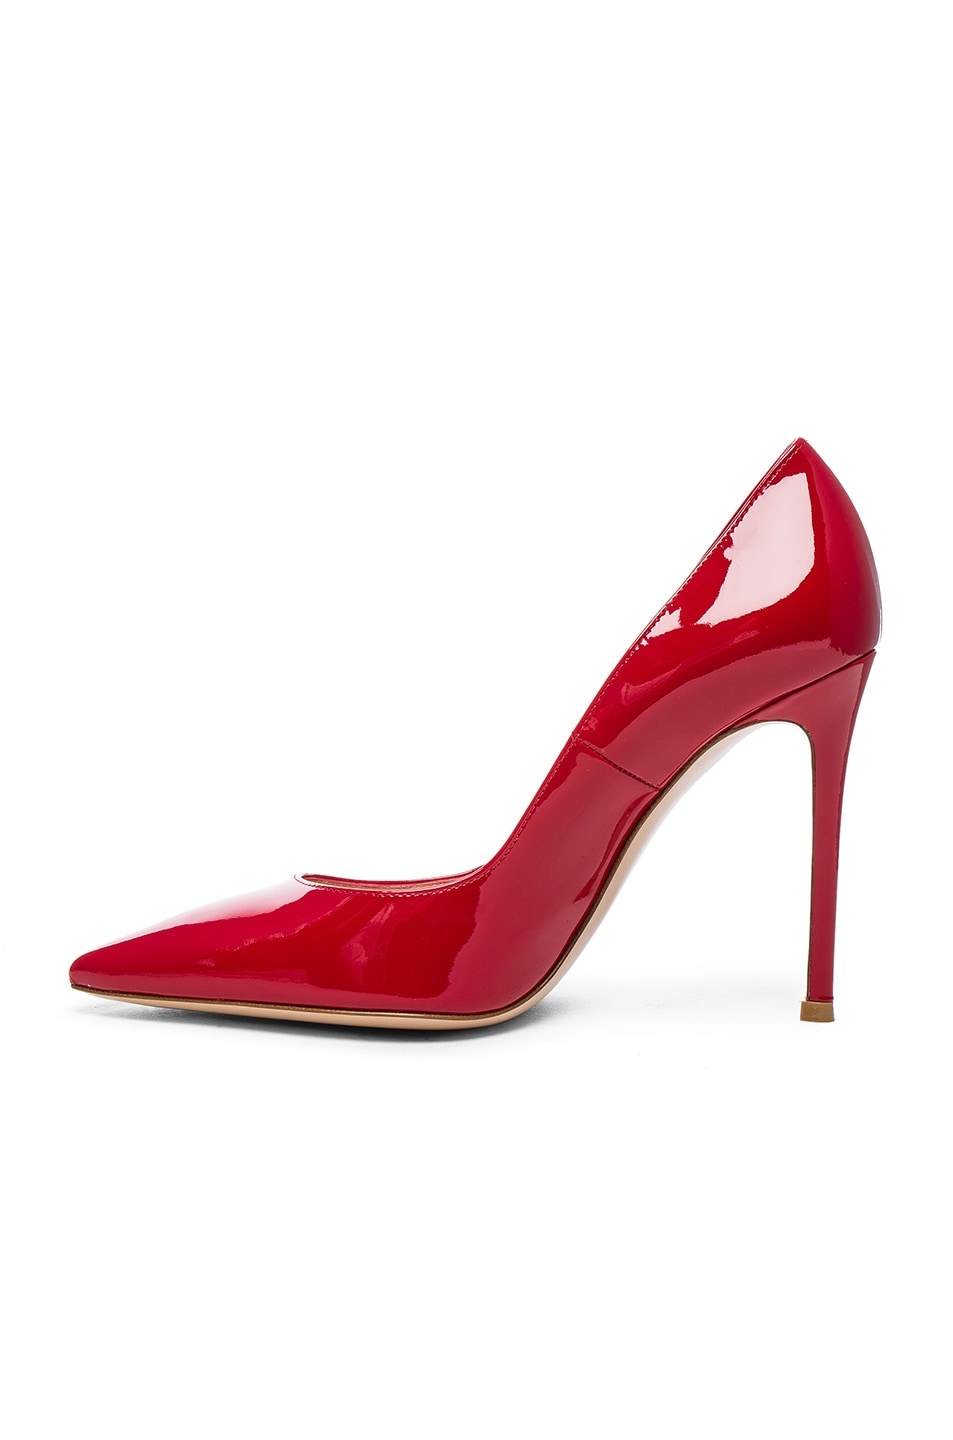 Image 5 of Gianvito Rossi Patent Leather Gianvito Pumps in Tabasco Red